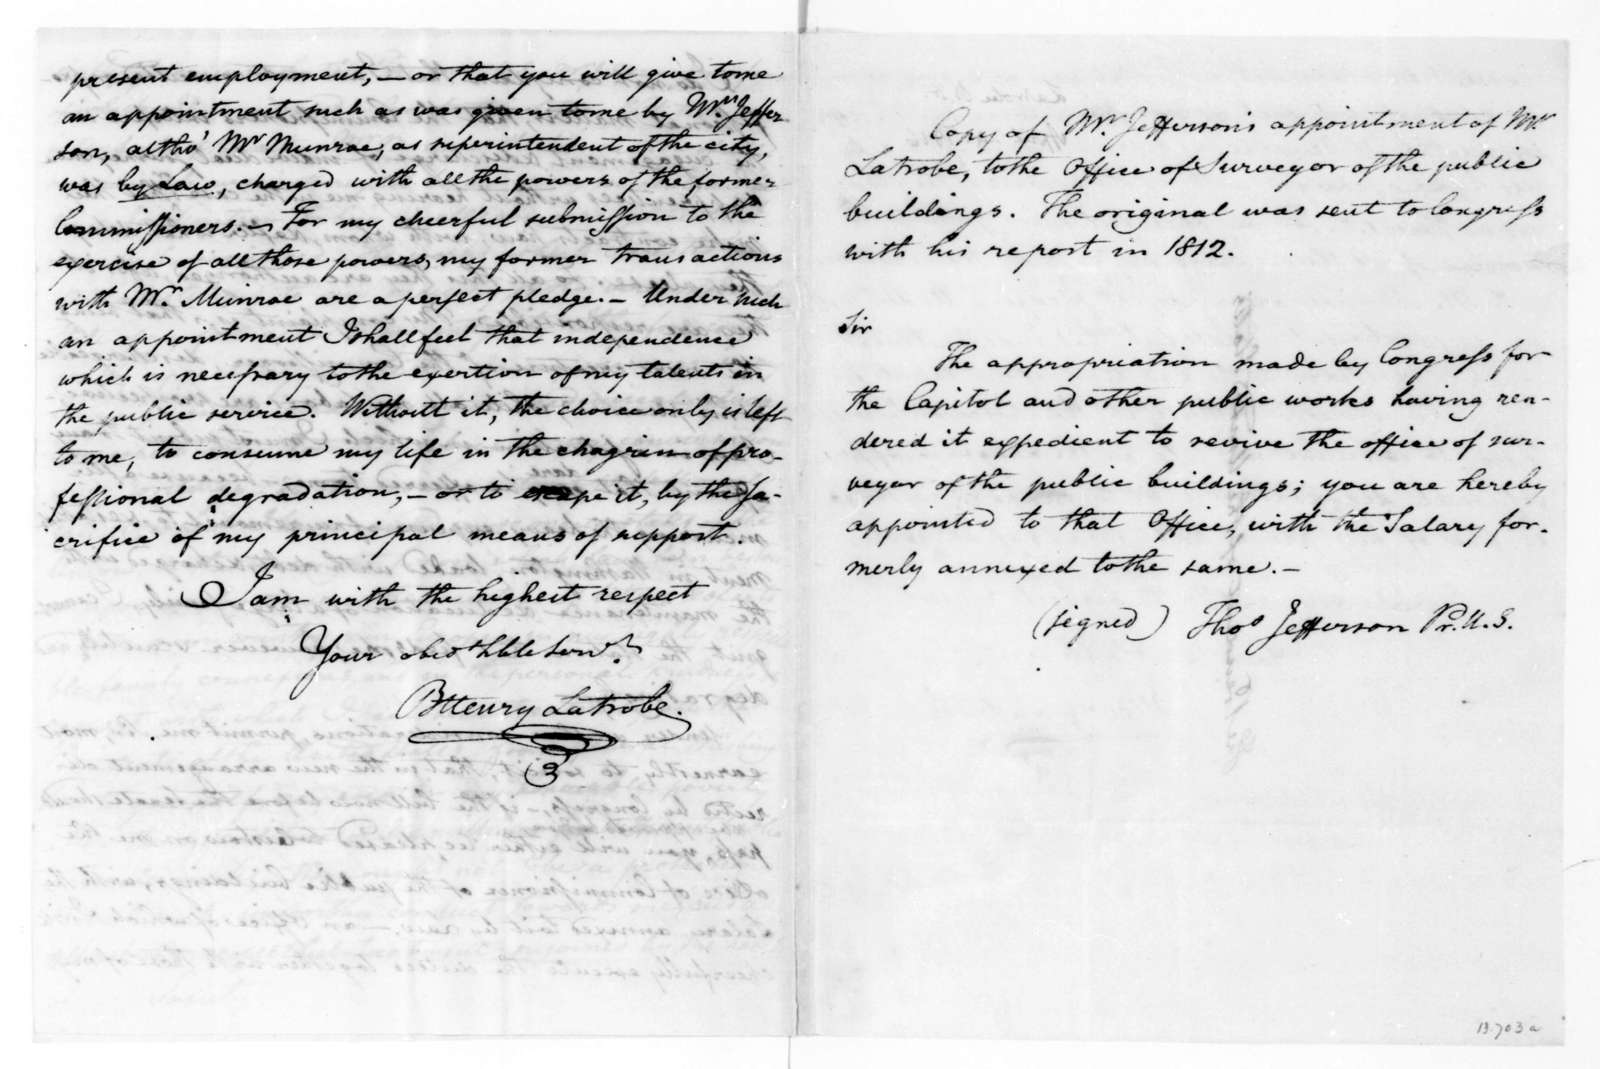 Benjamin H. Latrobe to James Madison, April 24, 1816. With a copy of an extract of Thomas Jefferson's letter of appointment to Benjamin H. Latrobe.